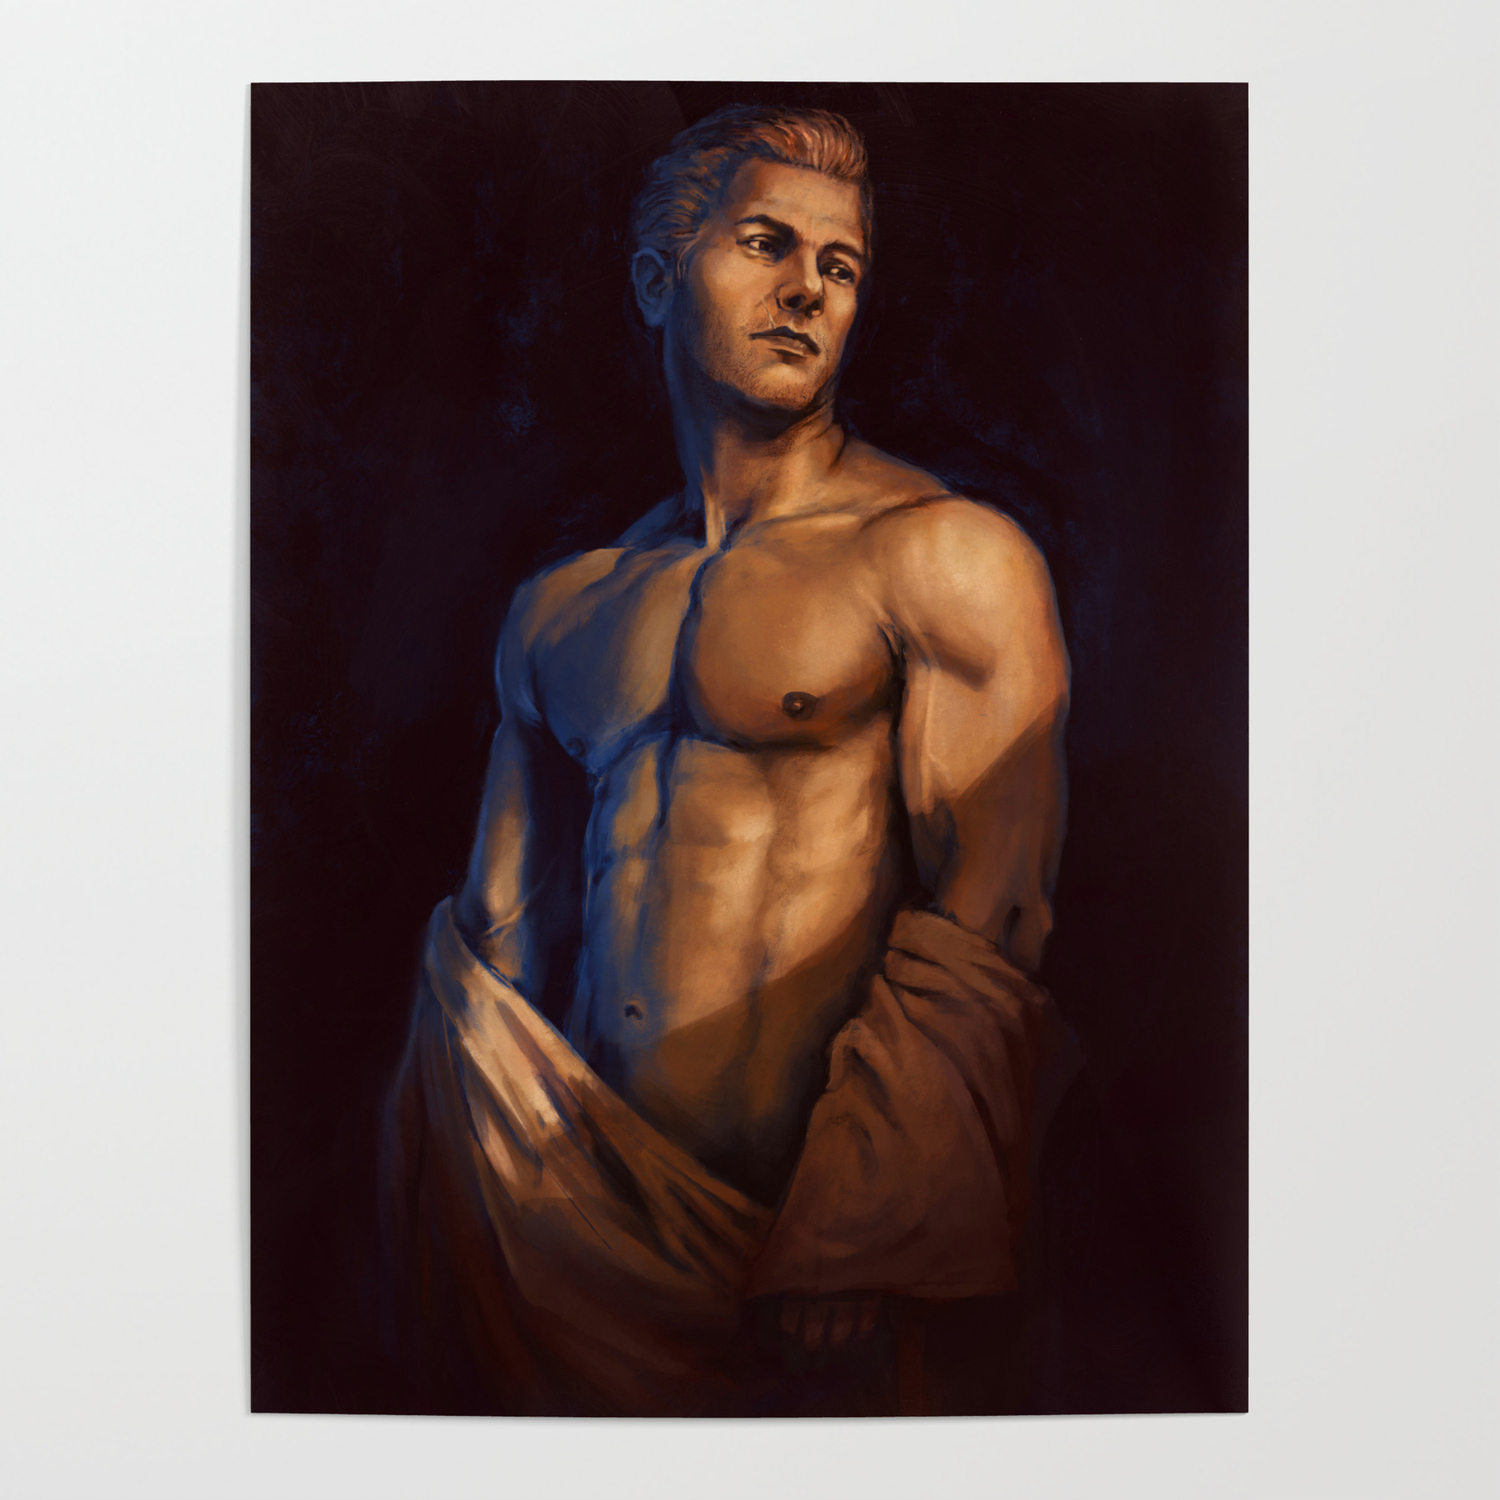 Cullen Nude Study Dragon Age Inquisition Templar Poster By Yuhime